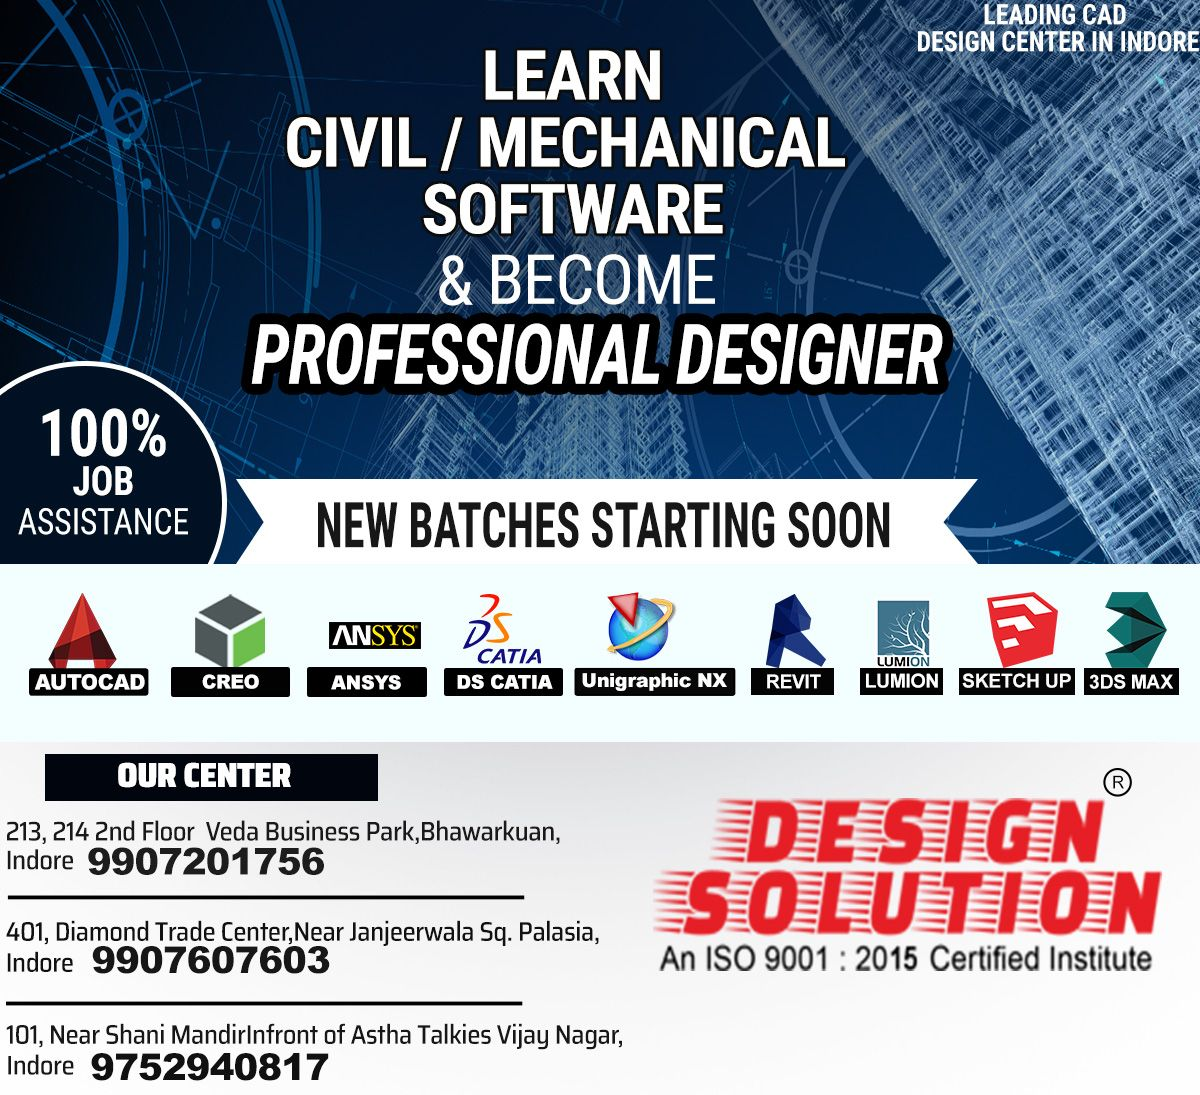 Learn Civil Architecture Mechanical Designing Cad Software With Design Solution And Open The Gates Of Opp Autocad Training Wellness Design Design Solutions